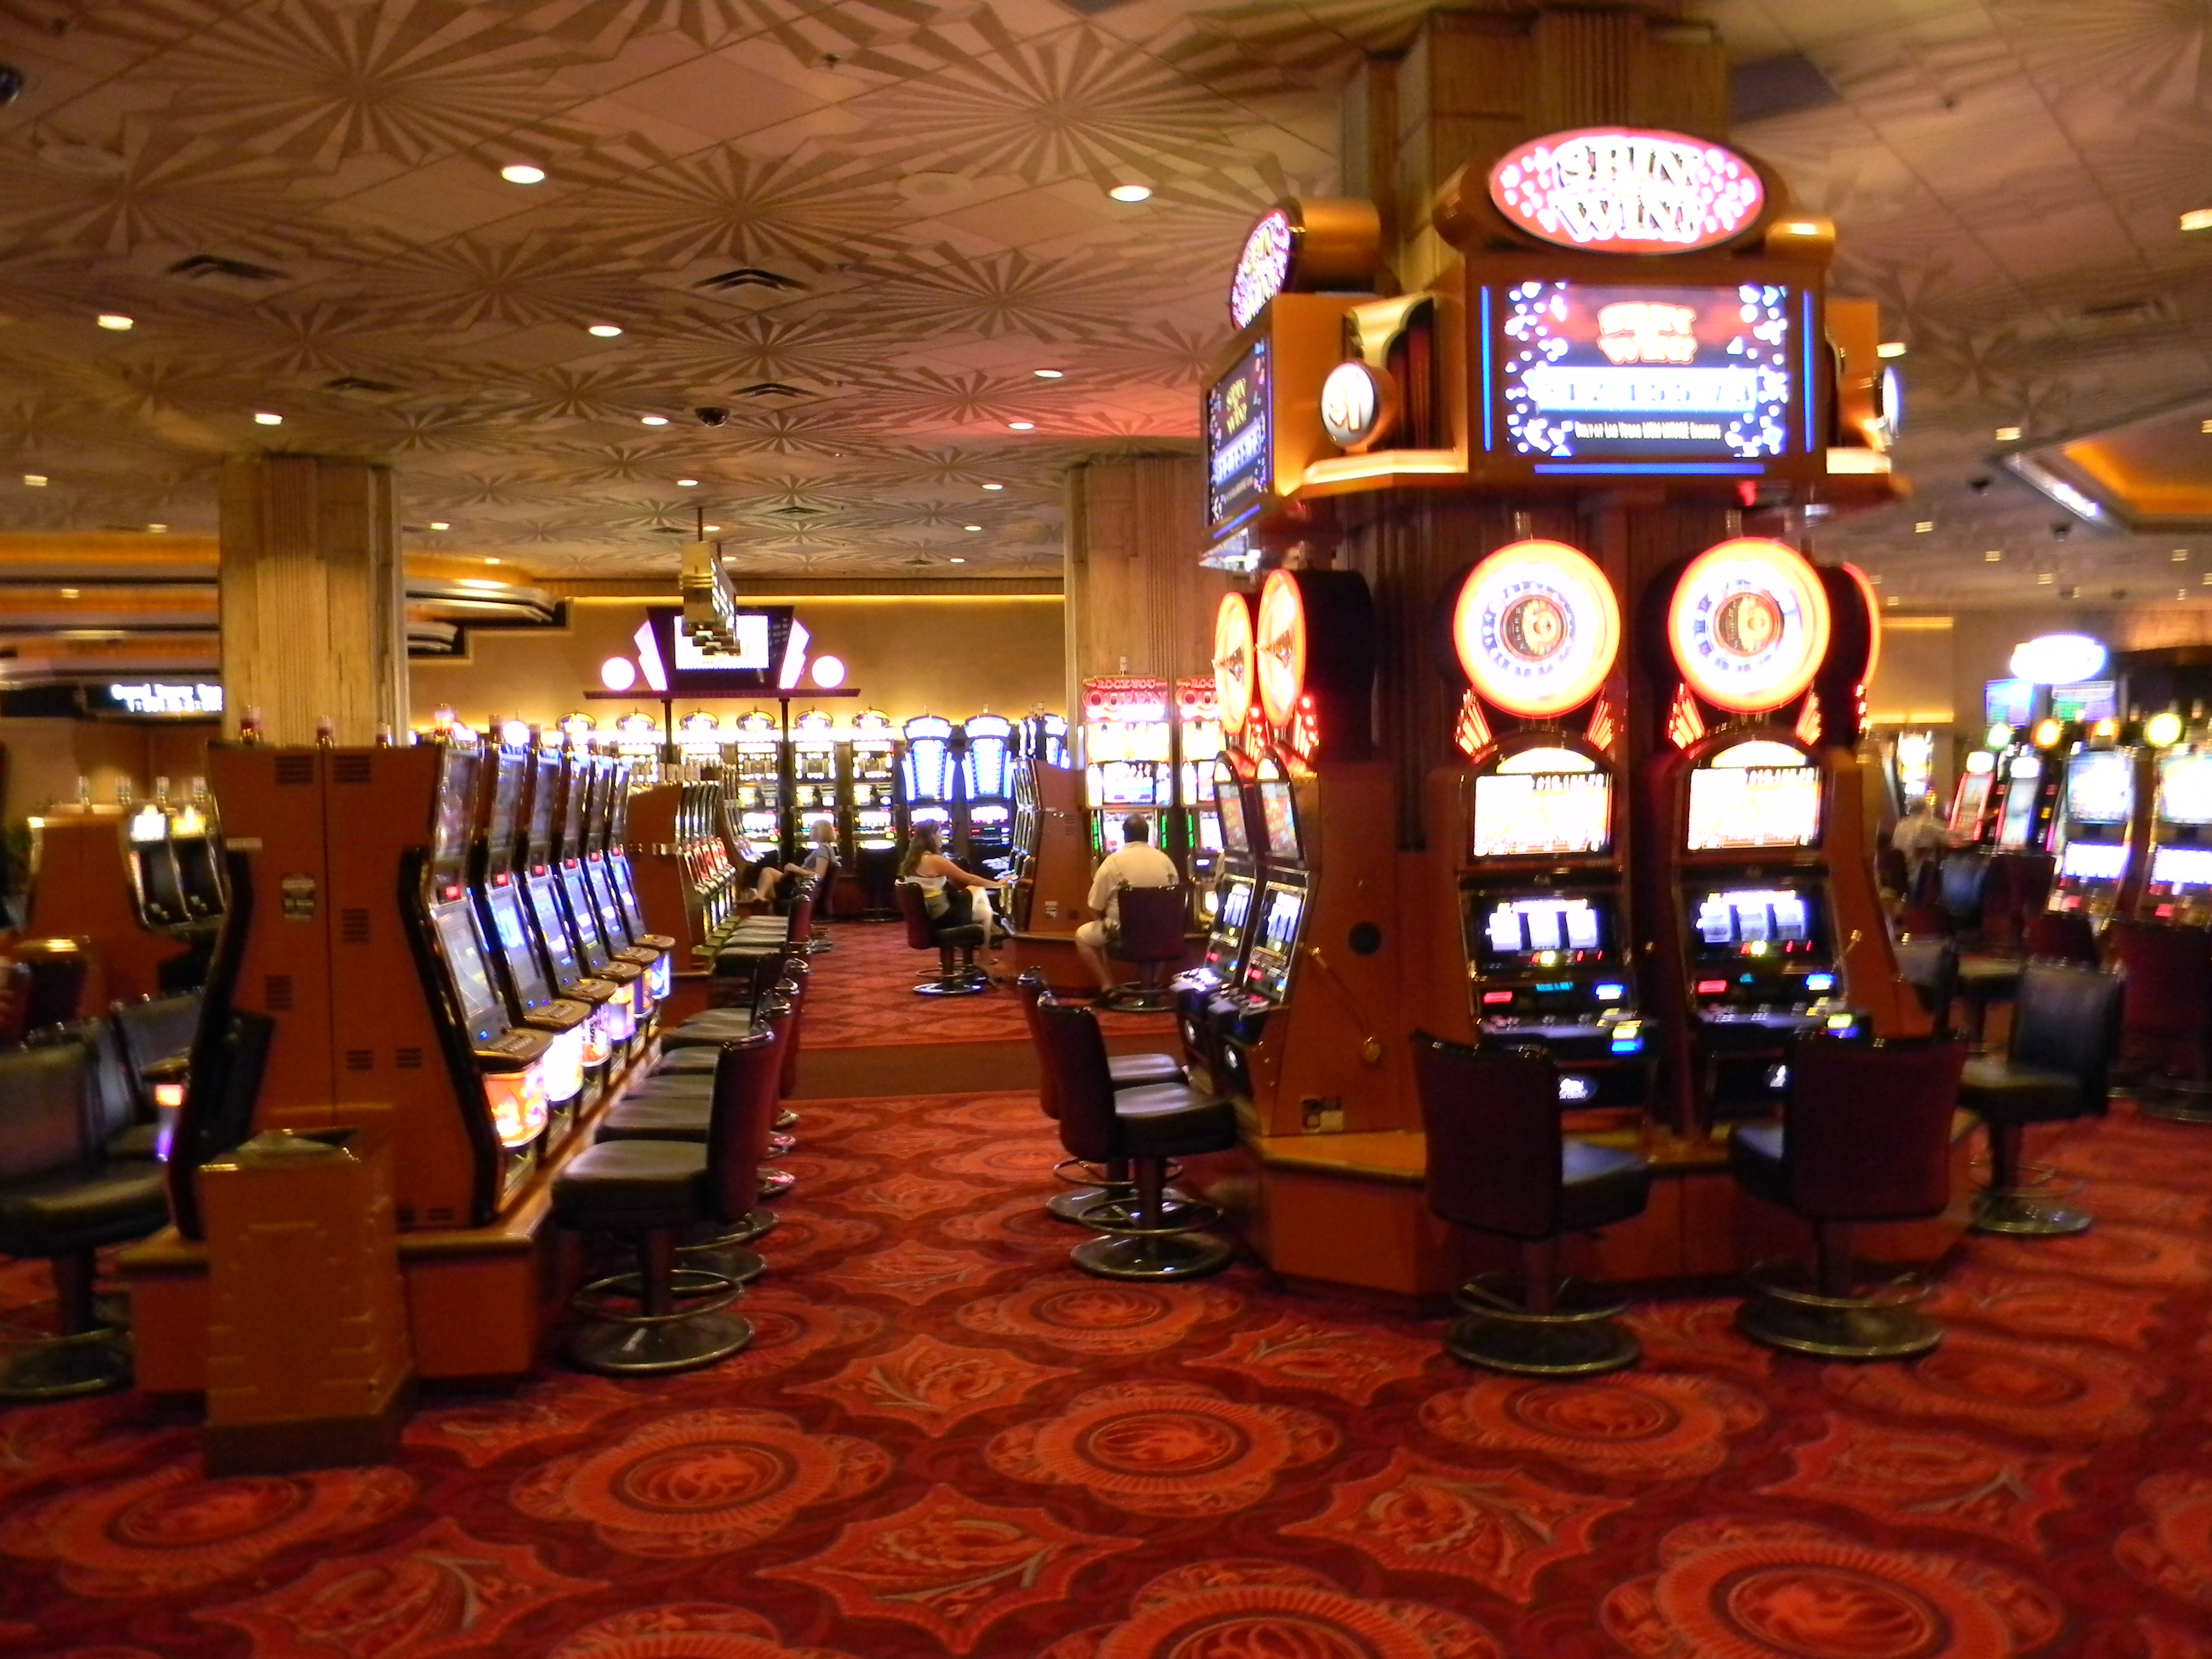 Mgm grand casino in vegas gambling nba nfl odds wagering